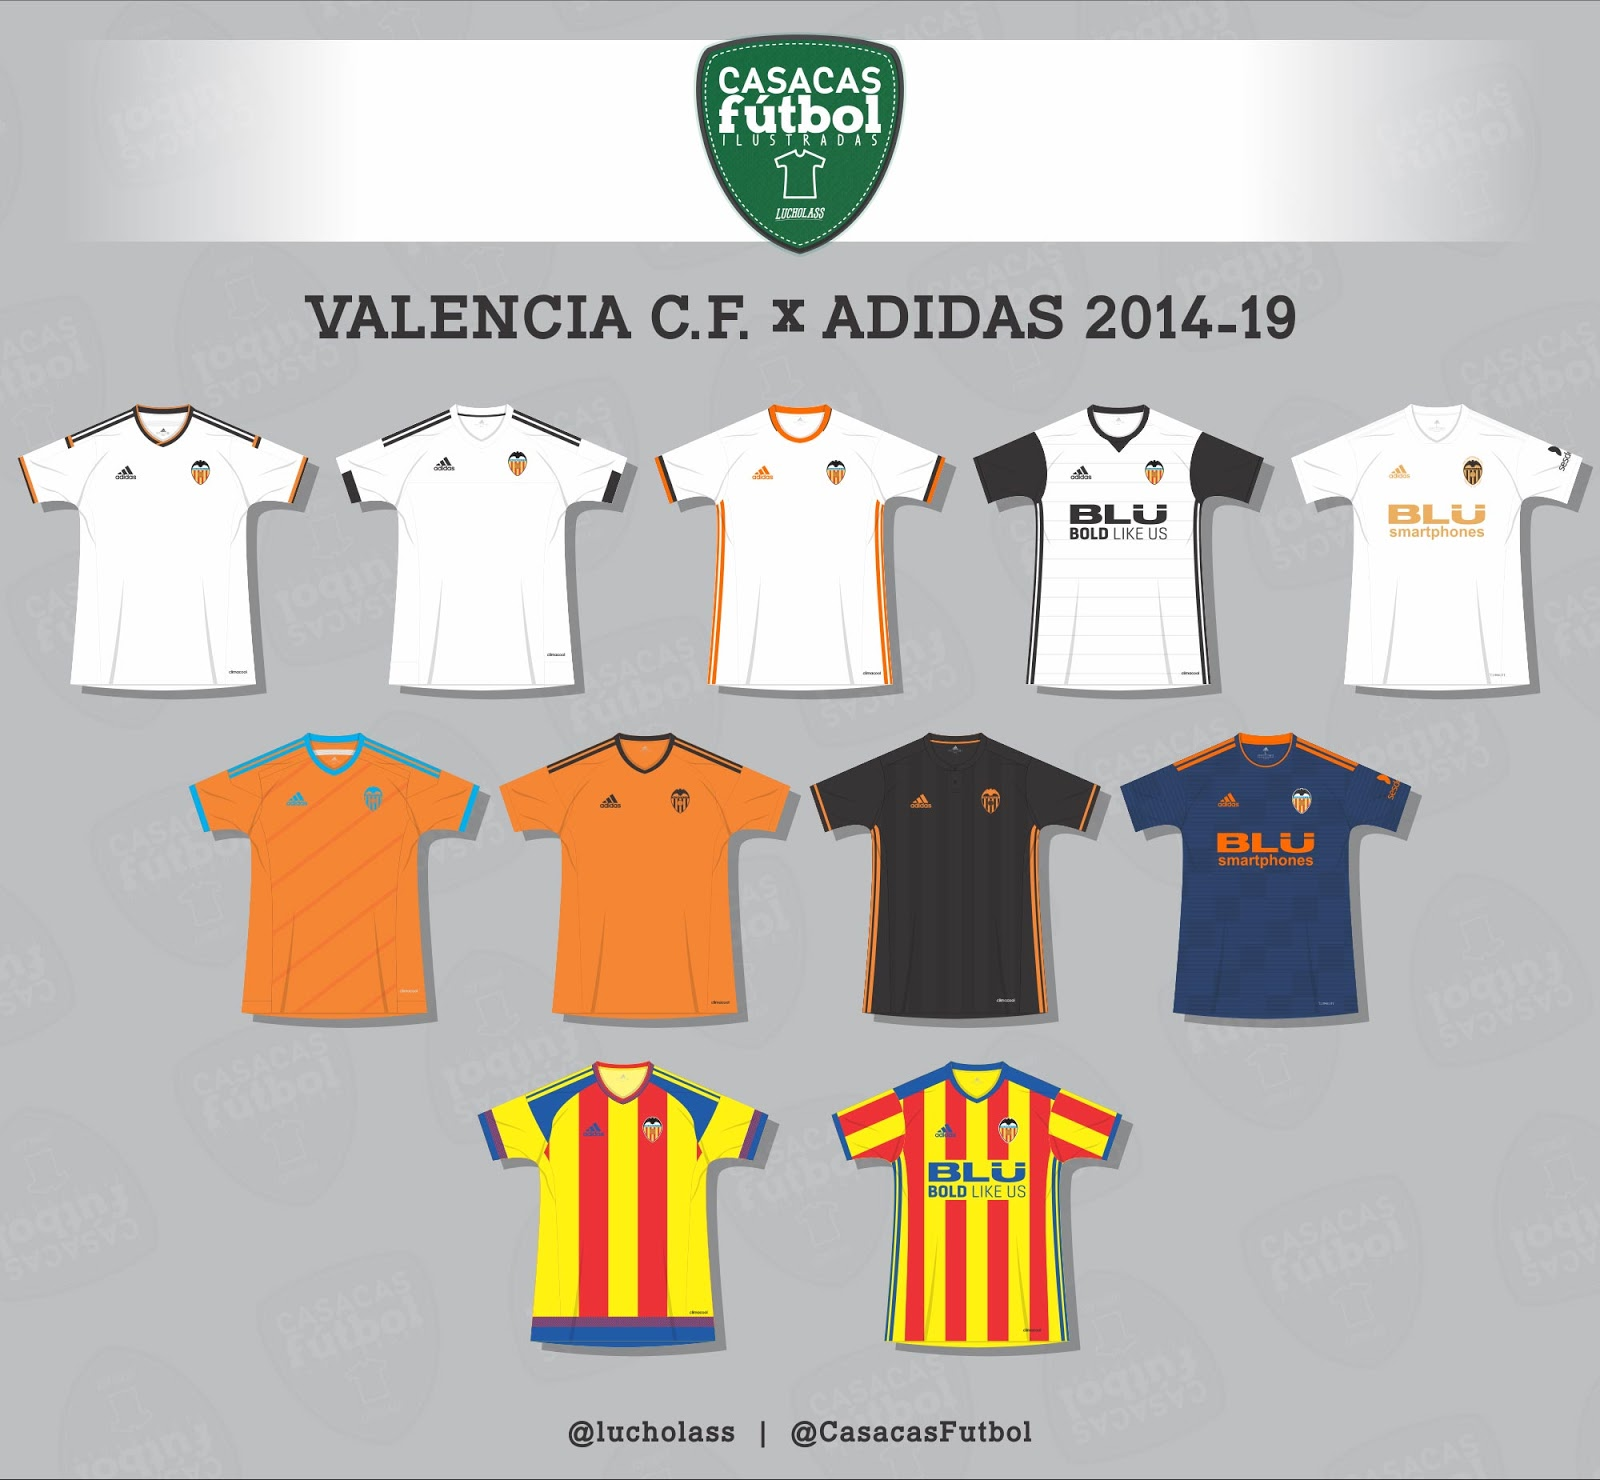 reputable site f1984 1c540 Puma From Next Season - Here Are All Adidas Valencia Kits In ...